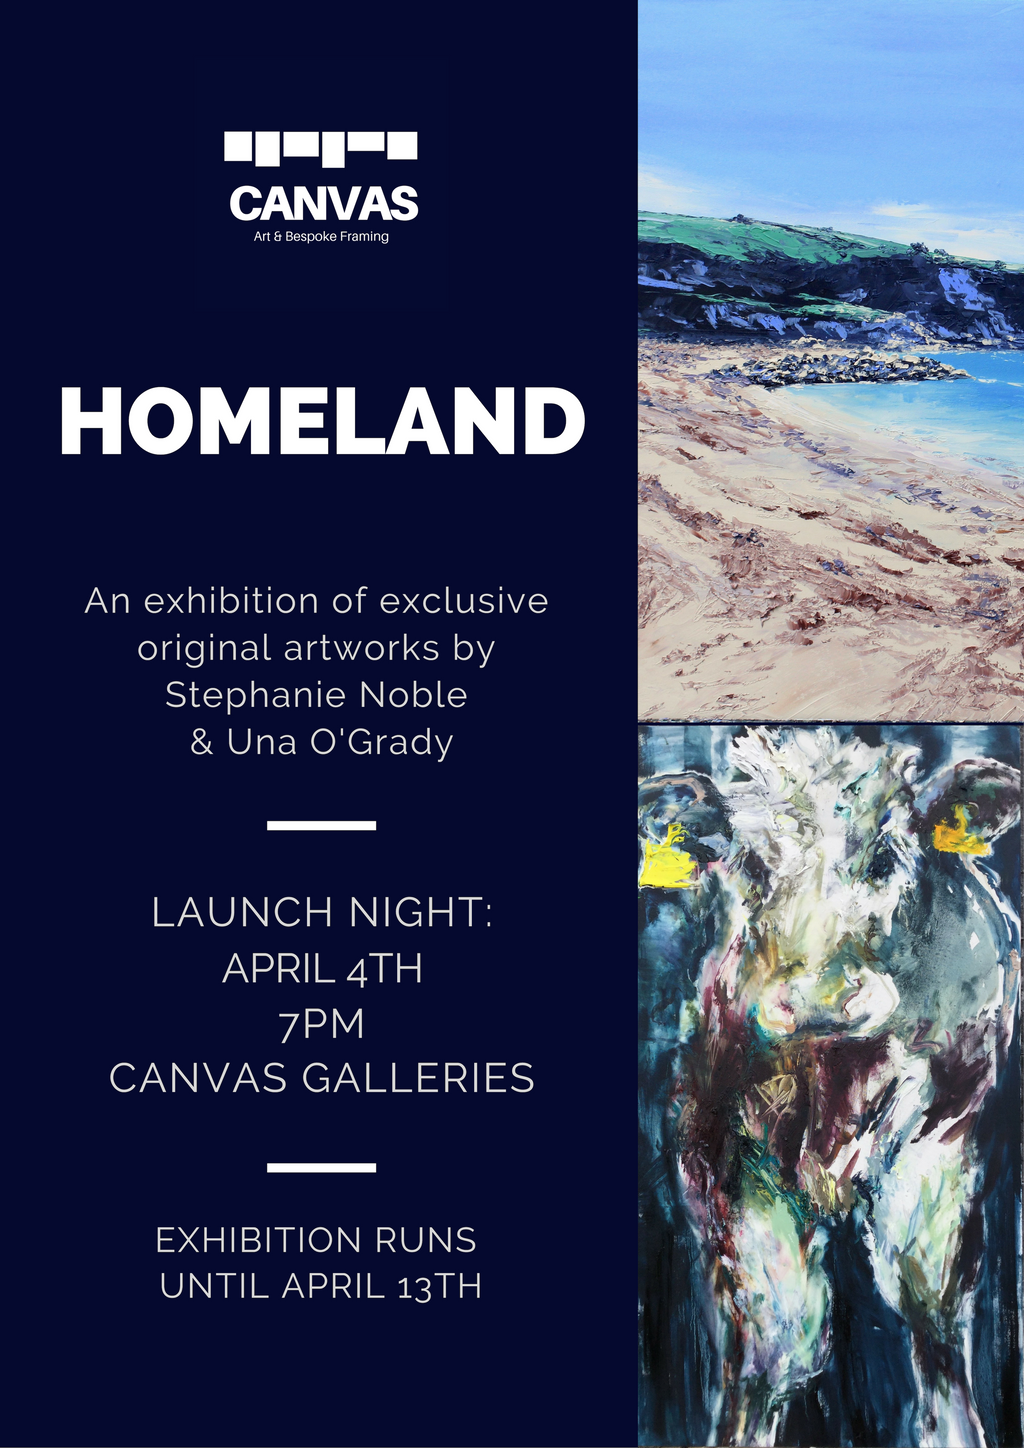 Homeland: Stephanie Noble & Una O'Grady